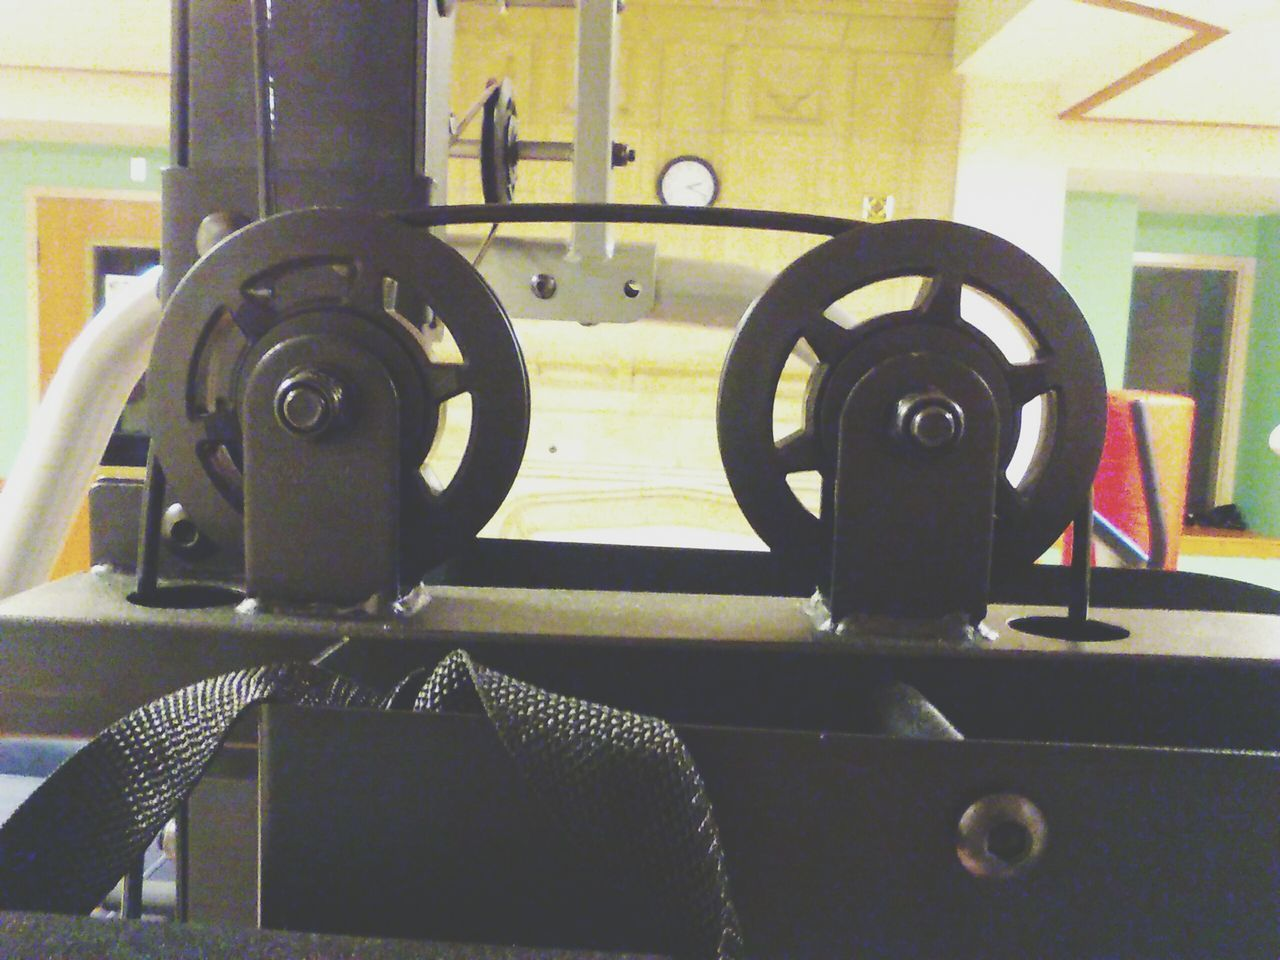 The OO Mission Workout Fitness Universal Machine Part Weights Black Exercise